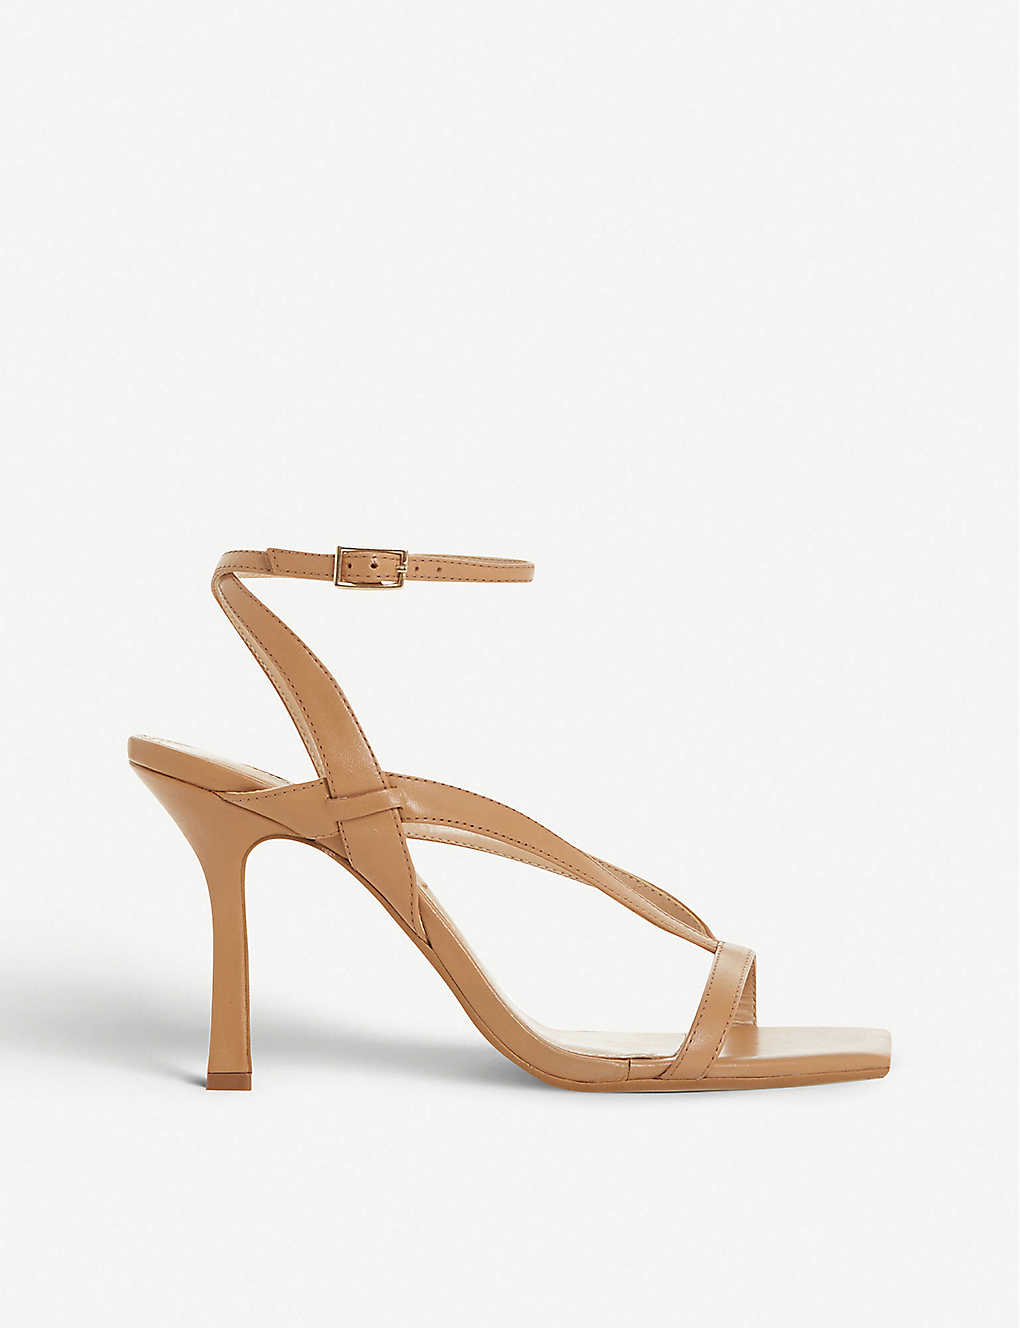 Monterey square toe leather heeled sandals